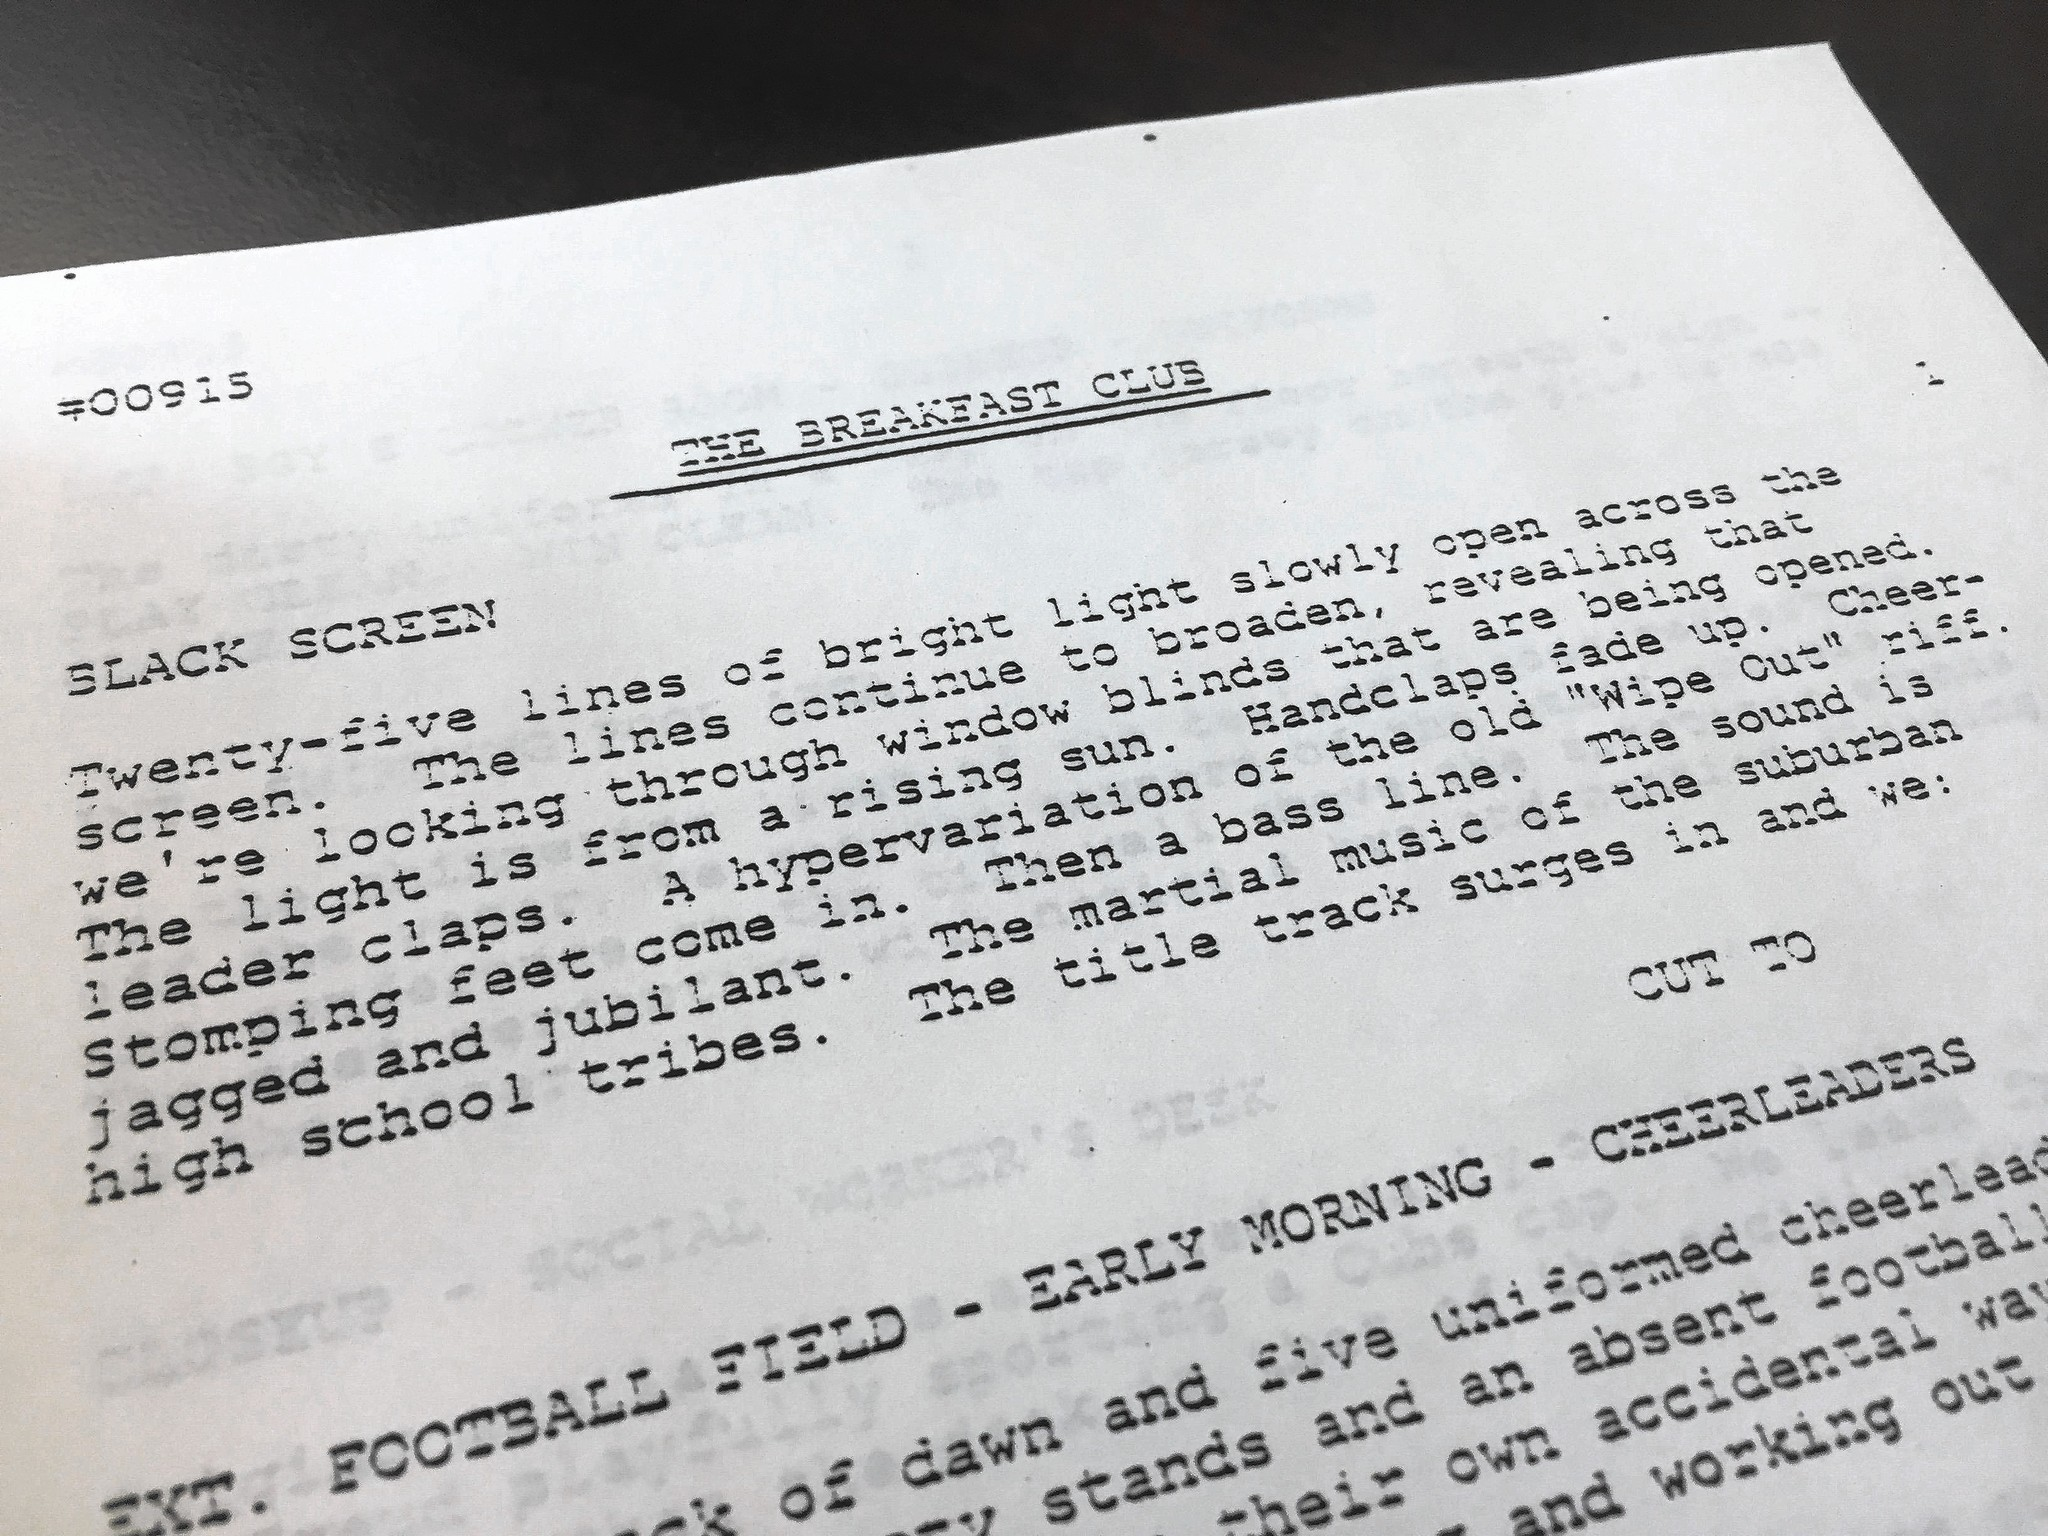 Original Breakfast Club screenplay found in District 207 cabinet